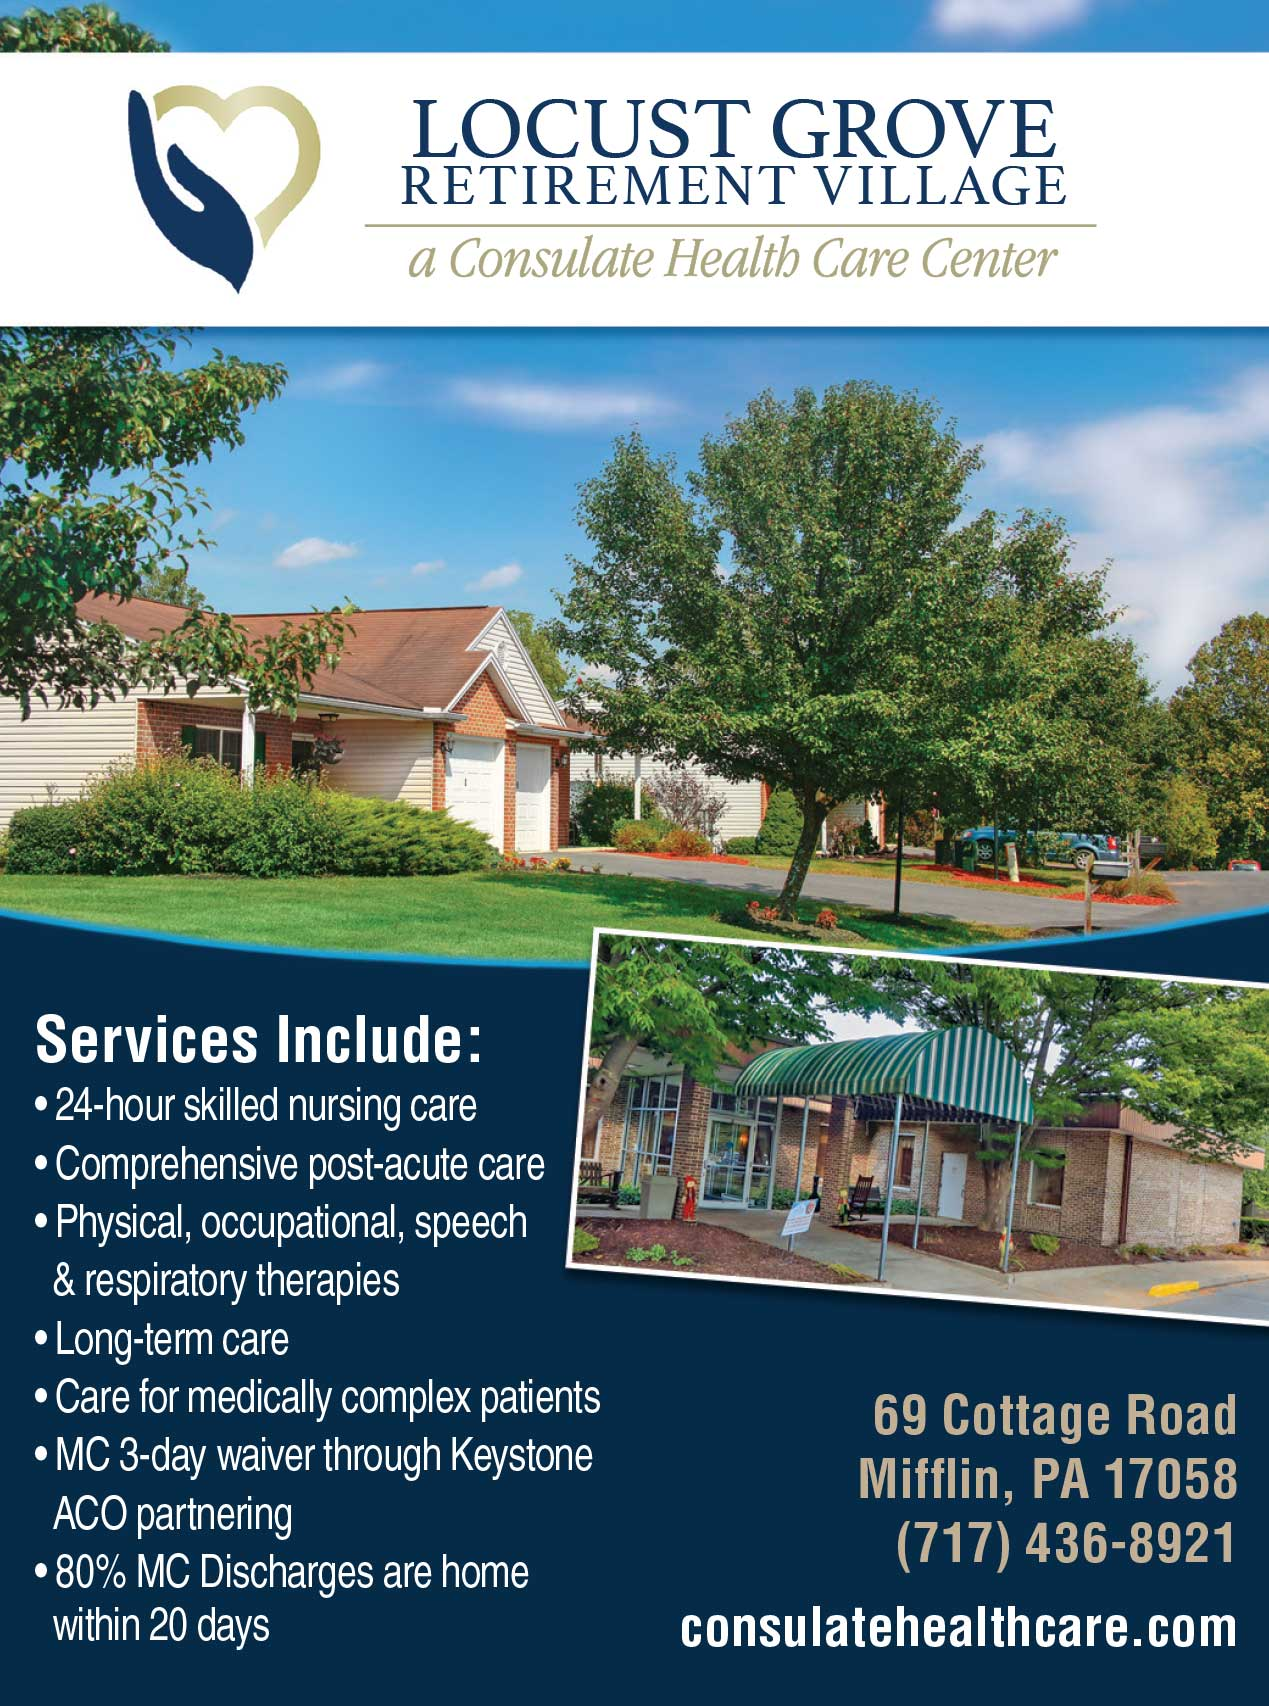 "<center>Locust Grove Retirement Village | <b><a href=""http://www.consulatehealthcare.com"" target=""_blank"" rel=""noopener noreferrer"">CLICK HERE to view the website</a></b></center>"